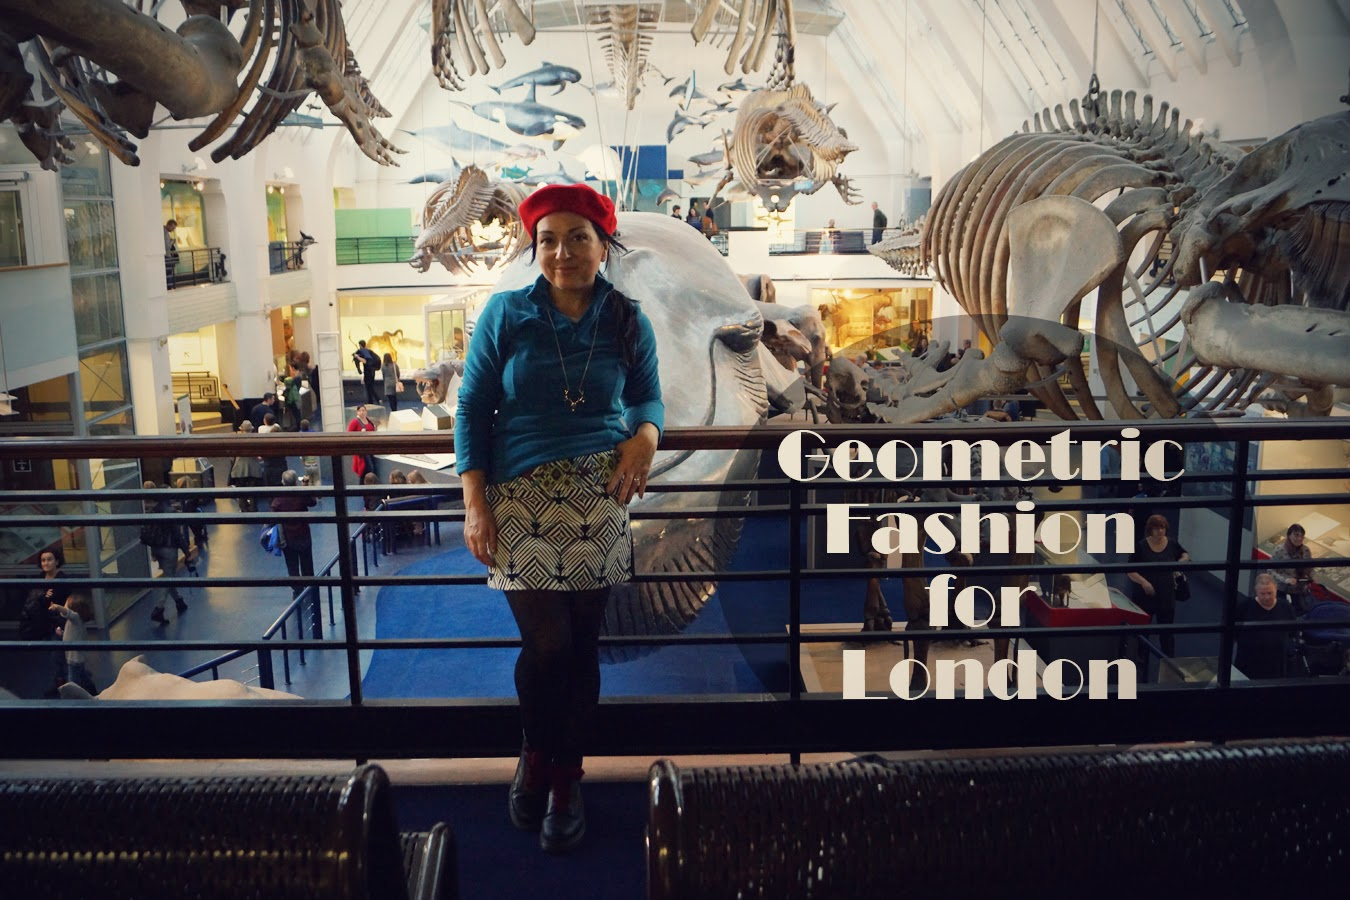 geometric+fashion+for+london